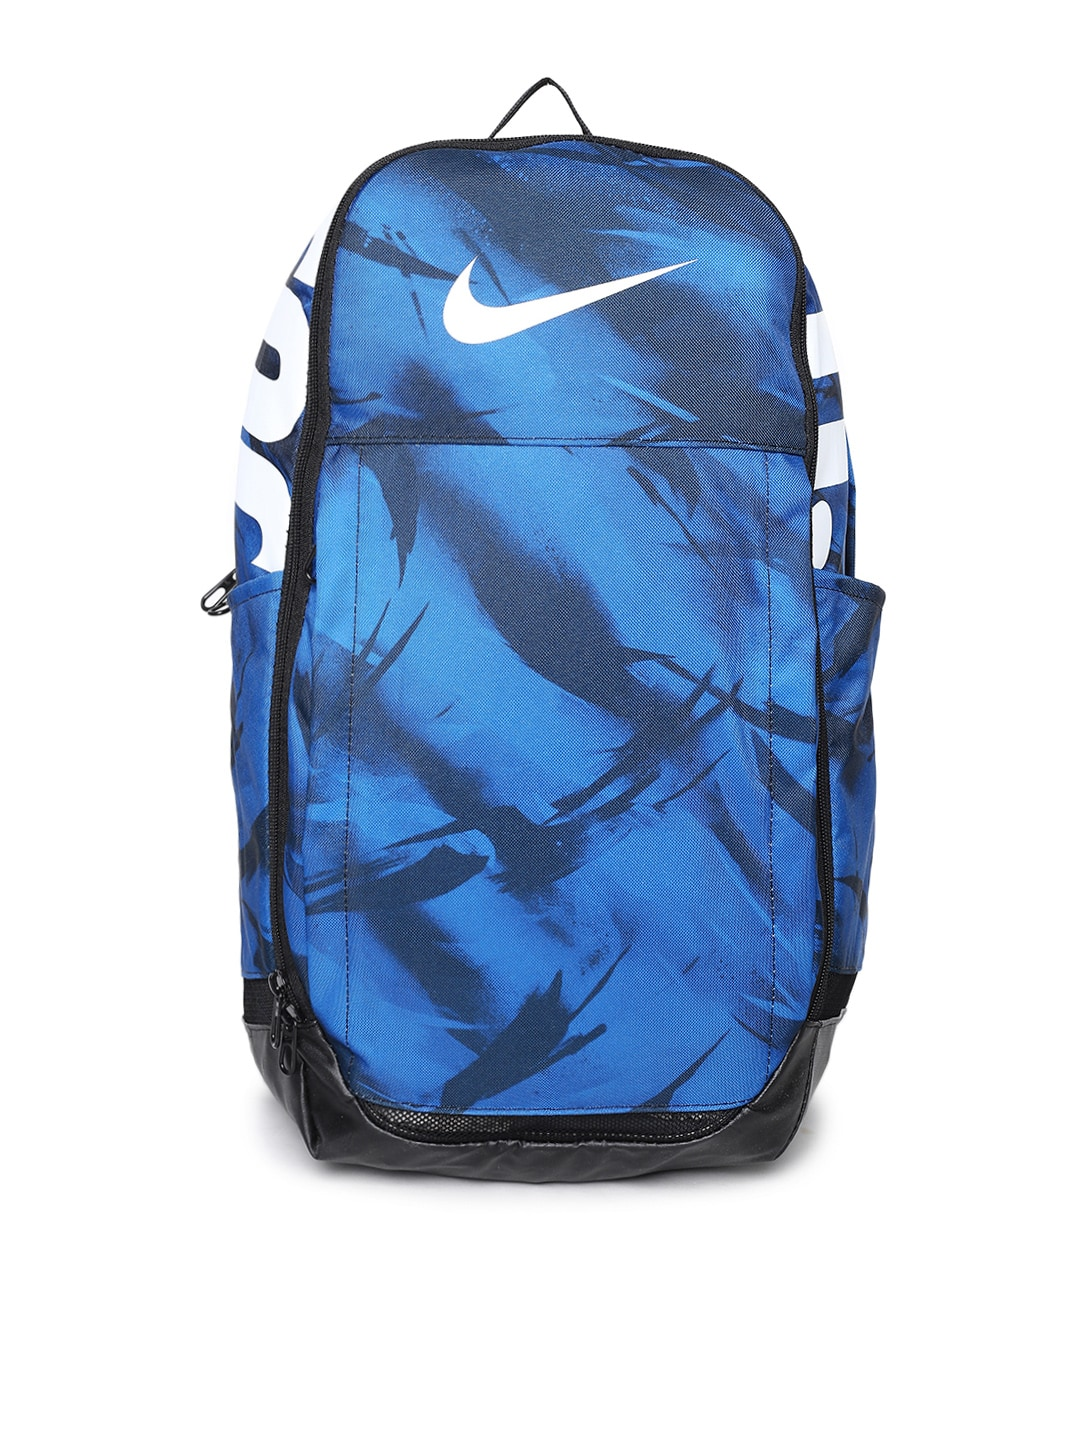 Nike Unisex Blue   Black Brand Logo Backpack 6dbd5b8e2deec